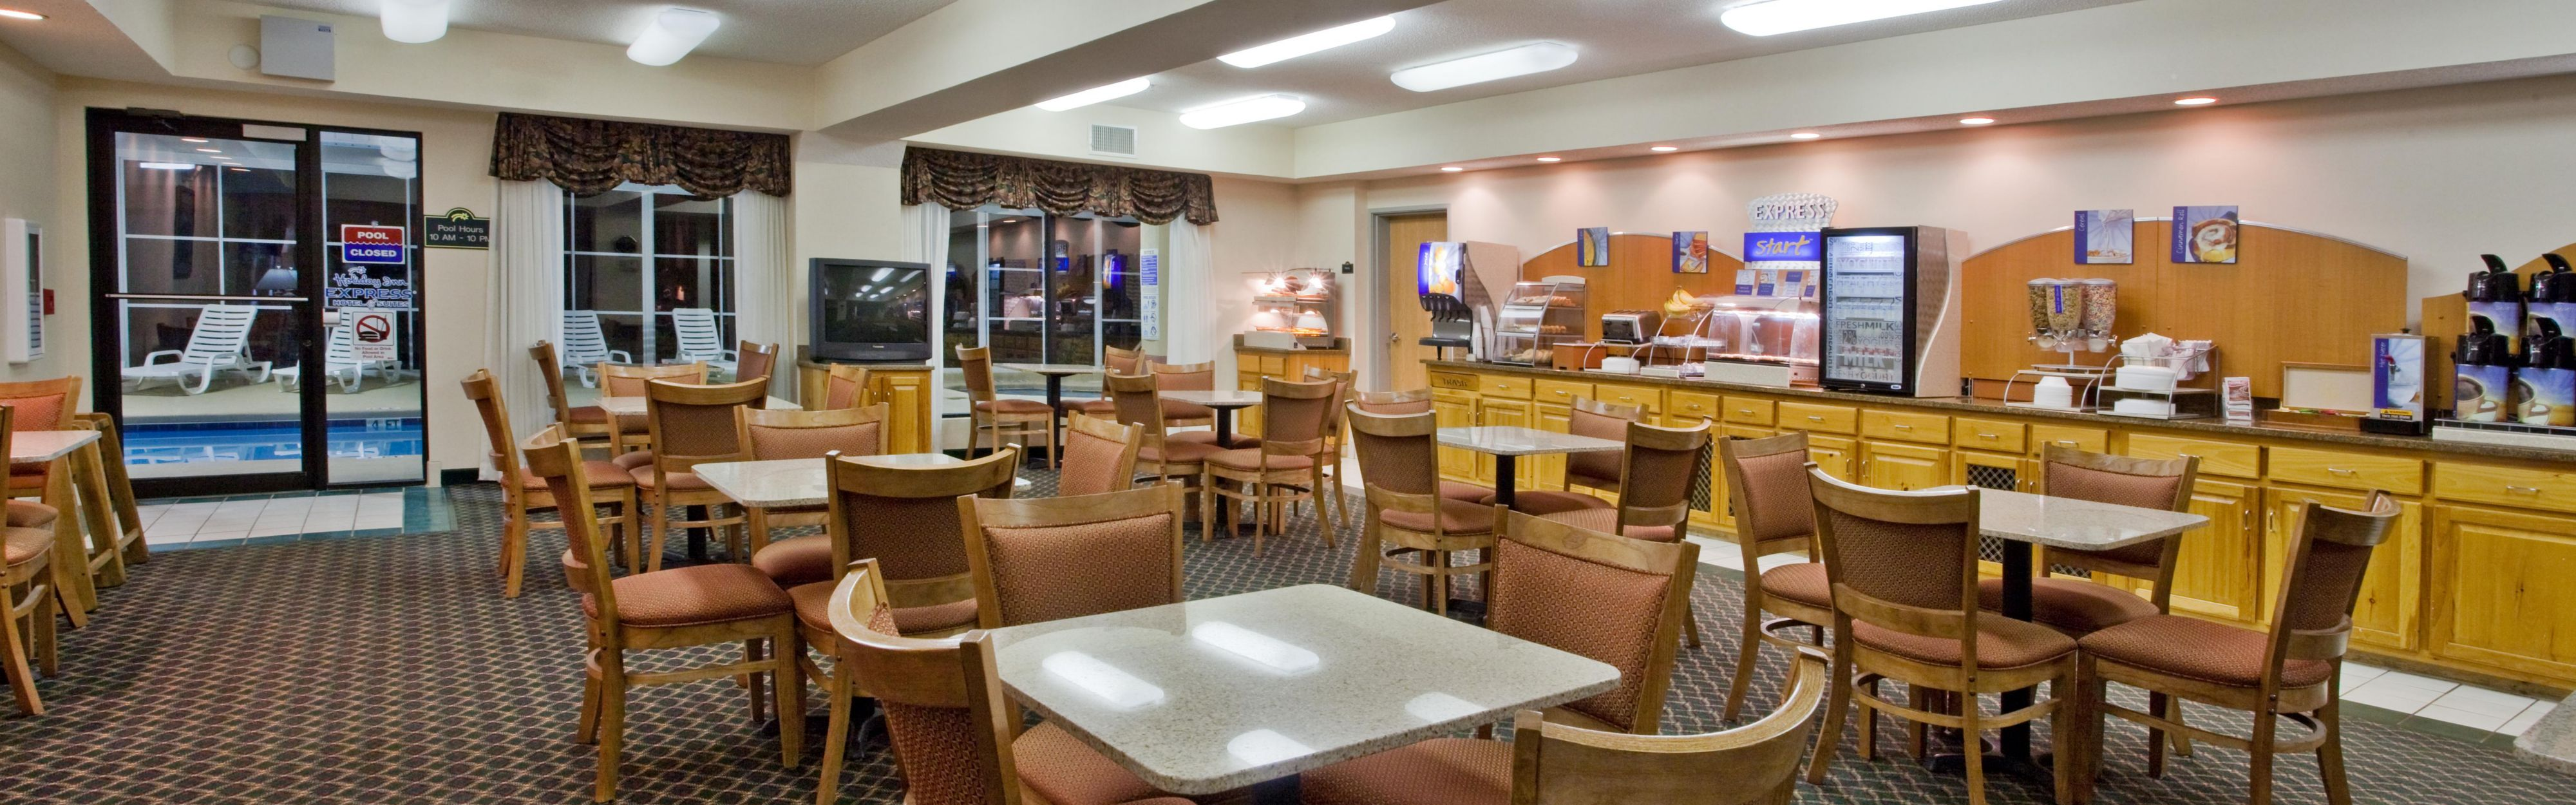 Holiday Inn Express & Suites Hiawassee image 3